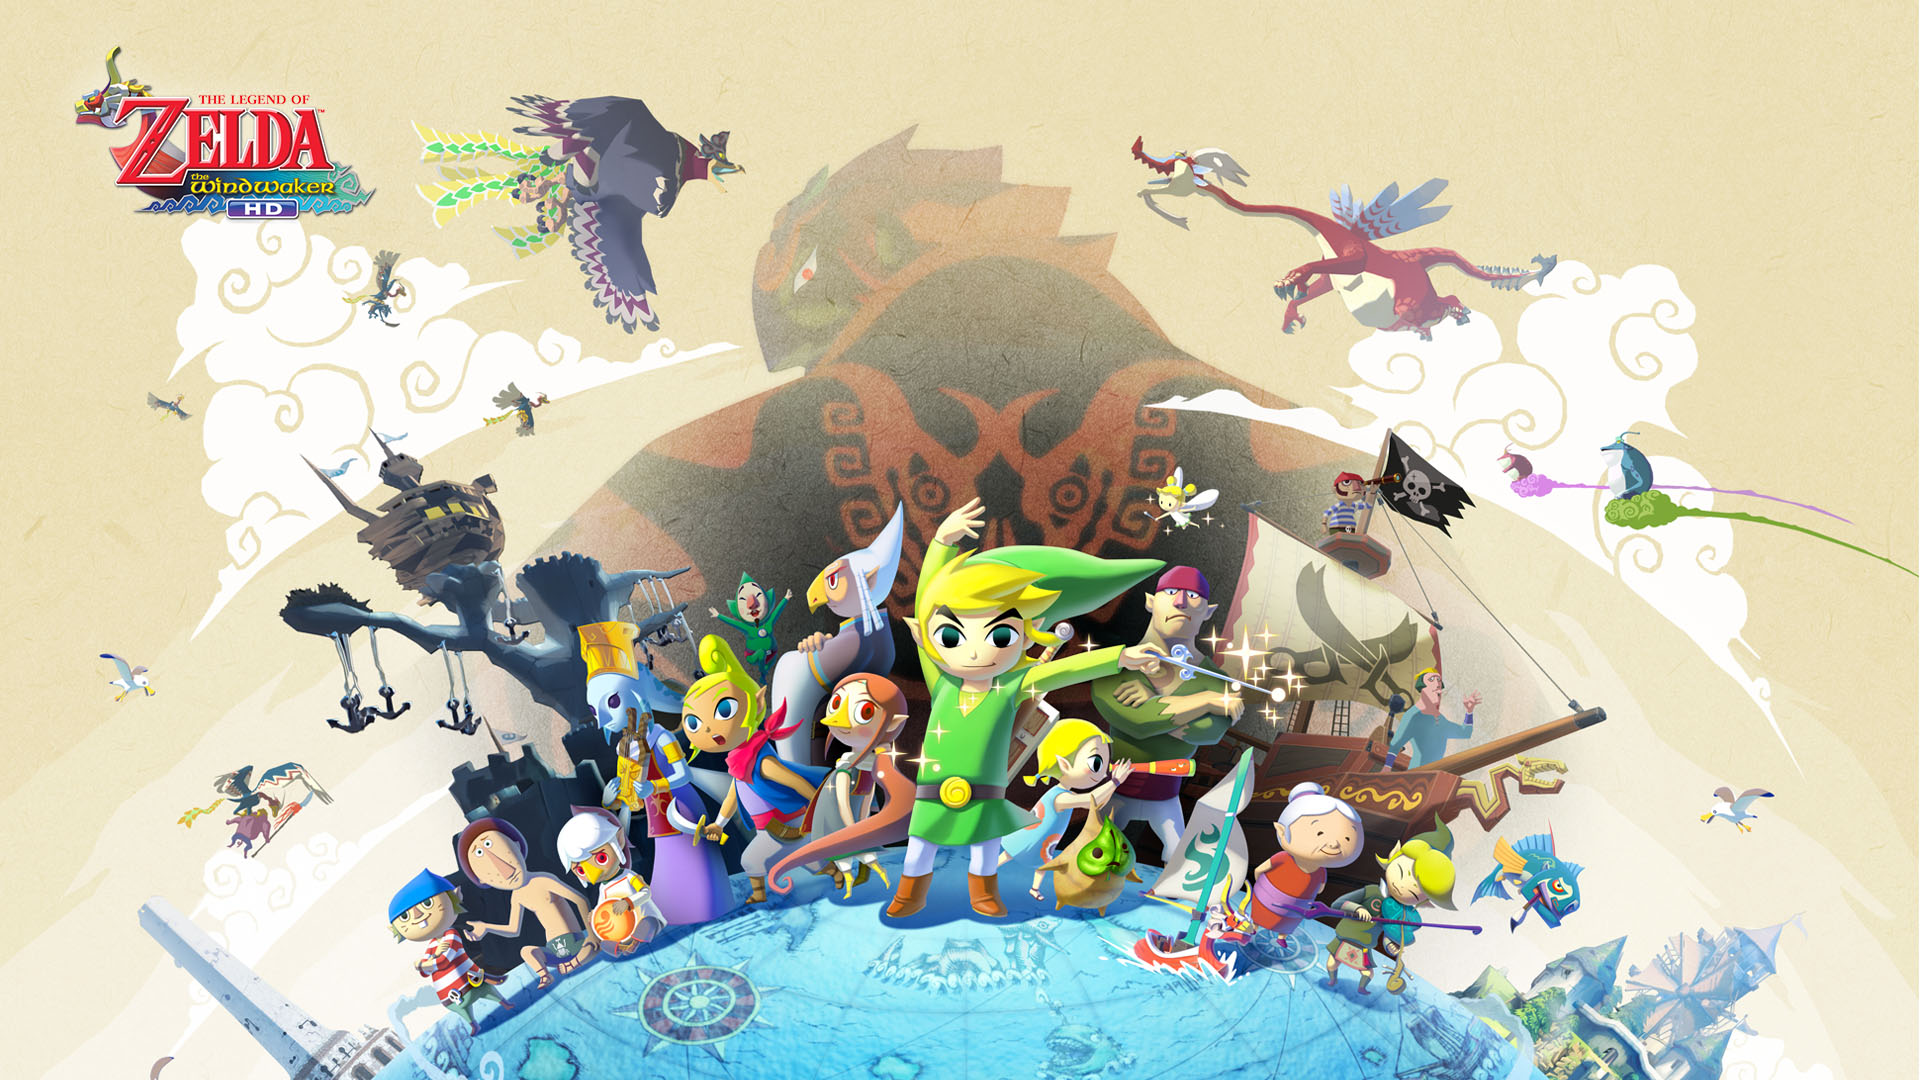 The Legend of Zelda – The Wind Waker HD: Naufragar m'è dolce in questo mare